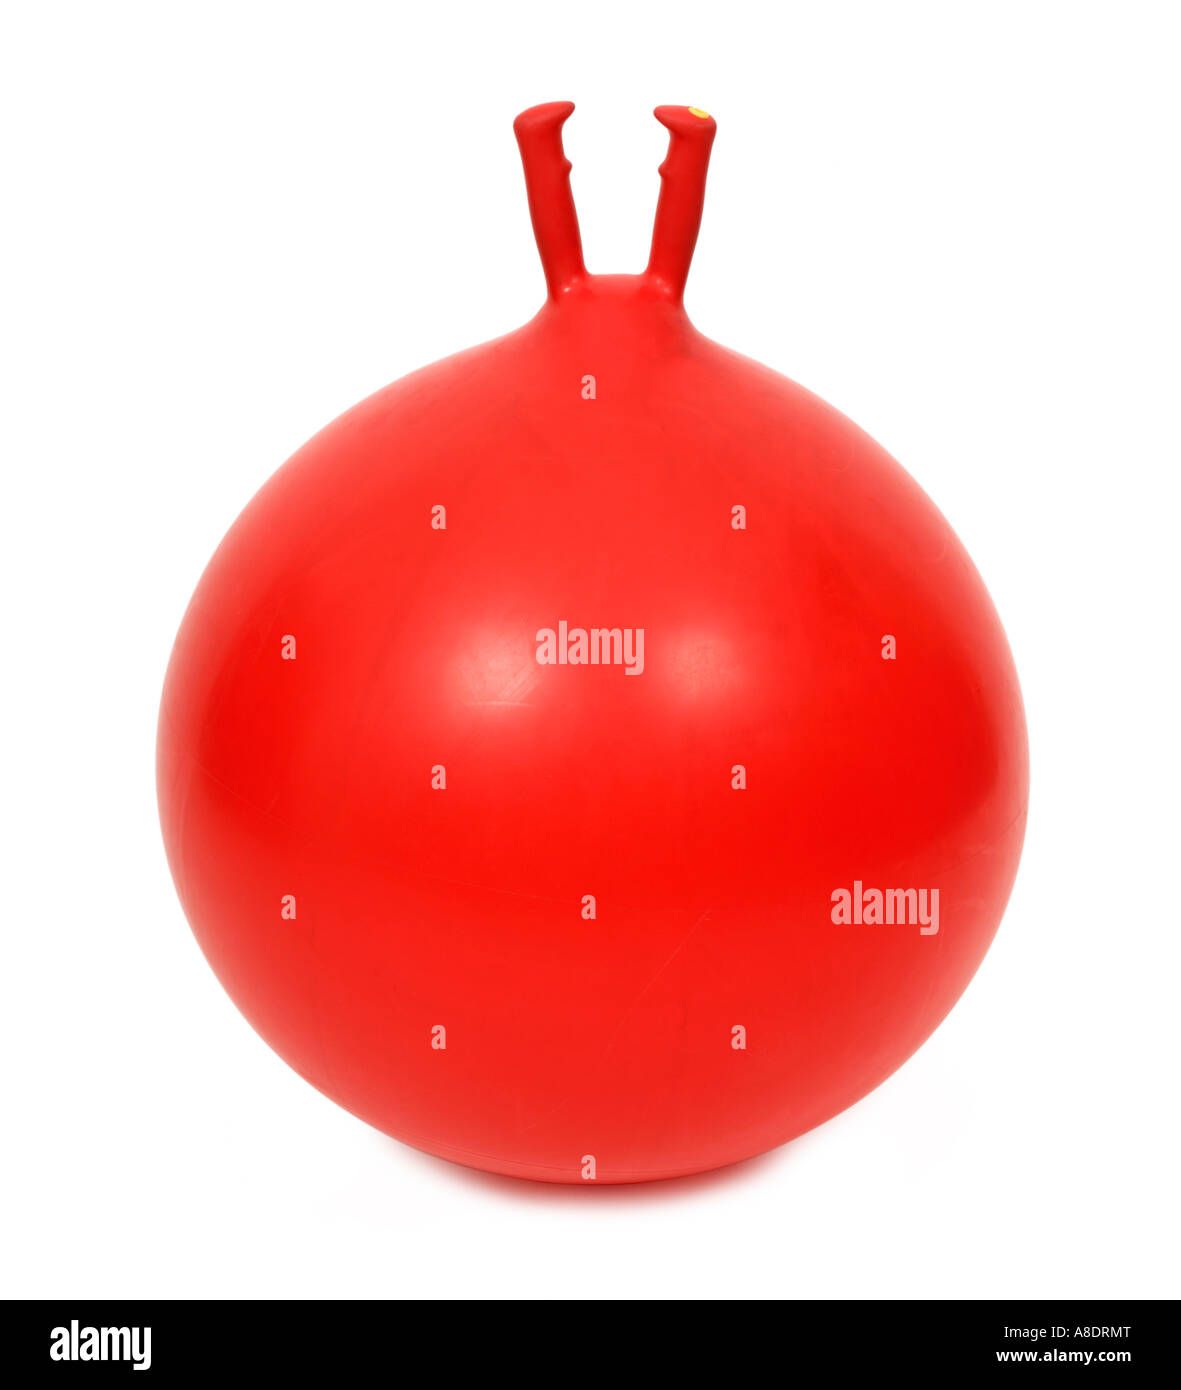 Red Space Hopper Photo Stock